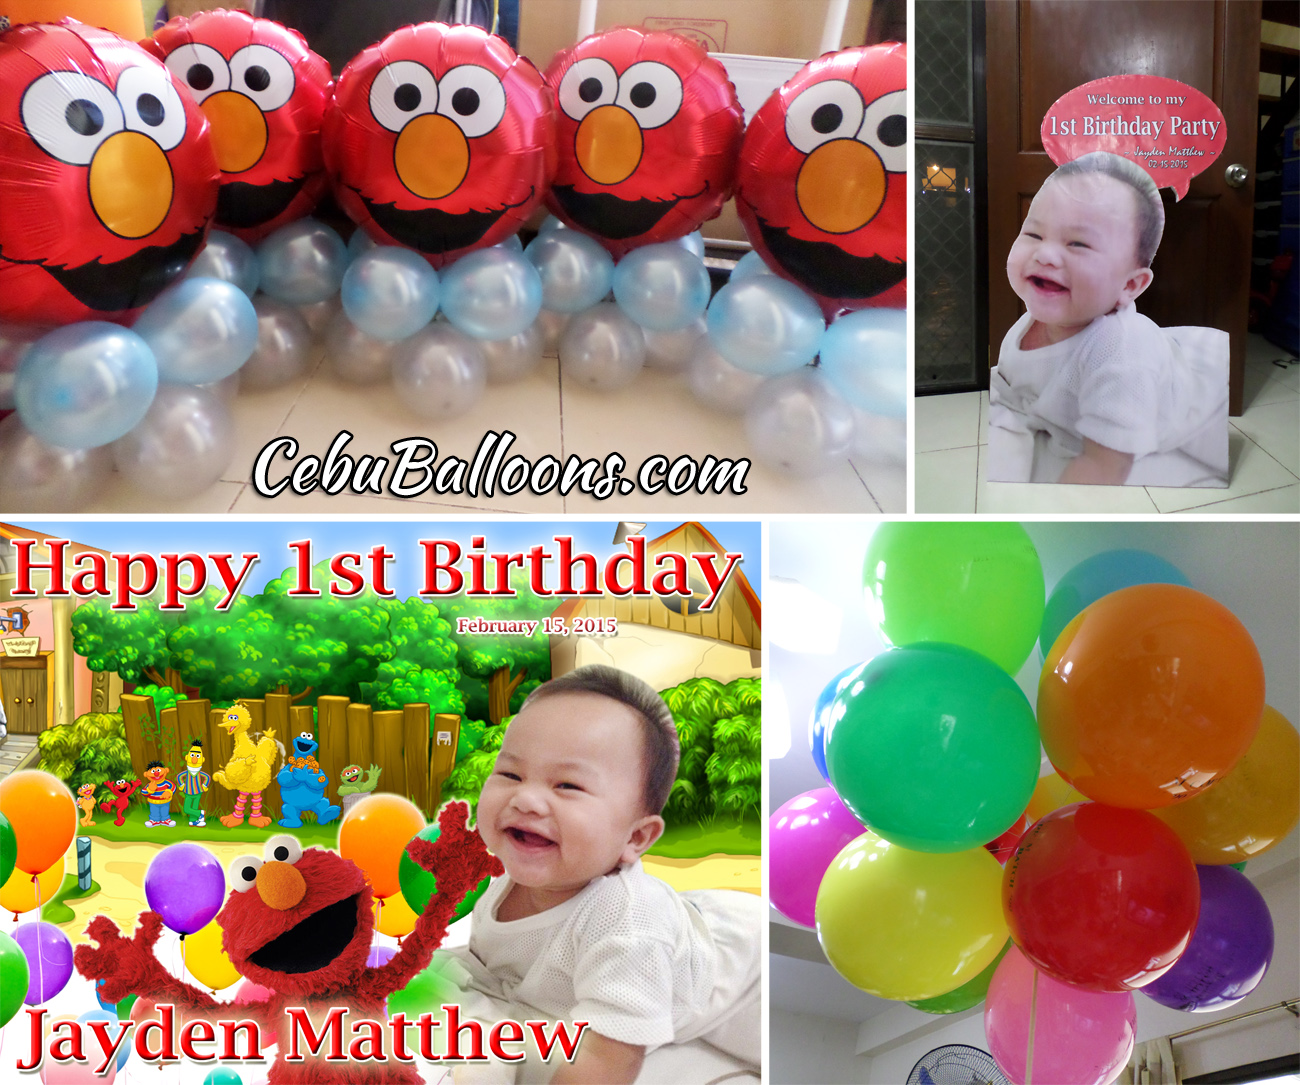 Elmo 1st birthday party ideas birthday party sesamestreet - Elmo Theme Party Decors For Jayden Matthew S 1st Birthday